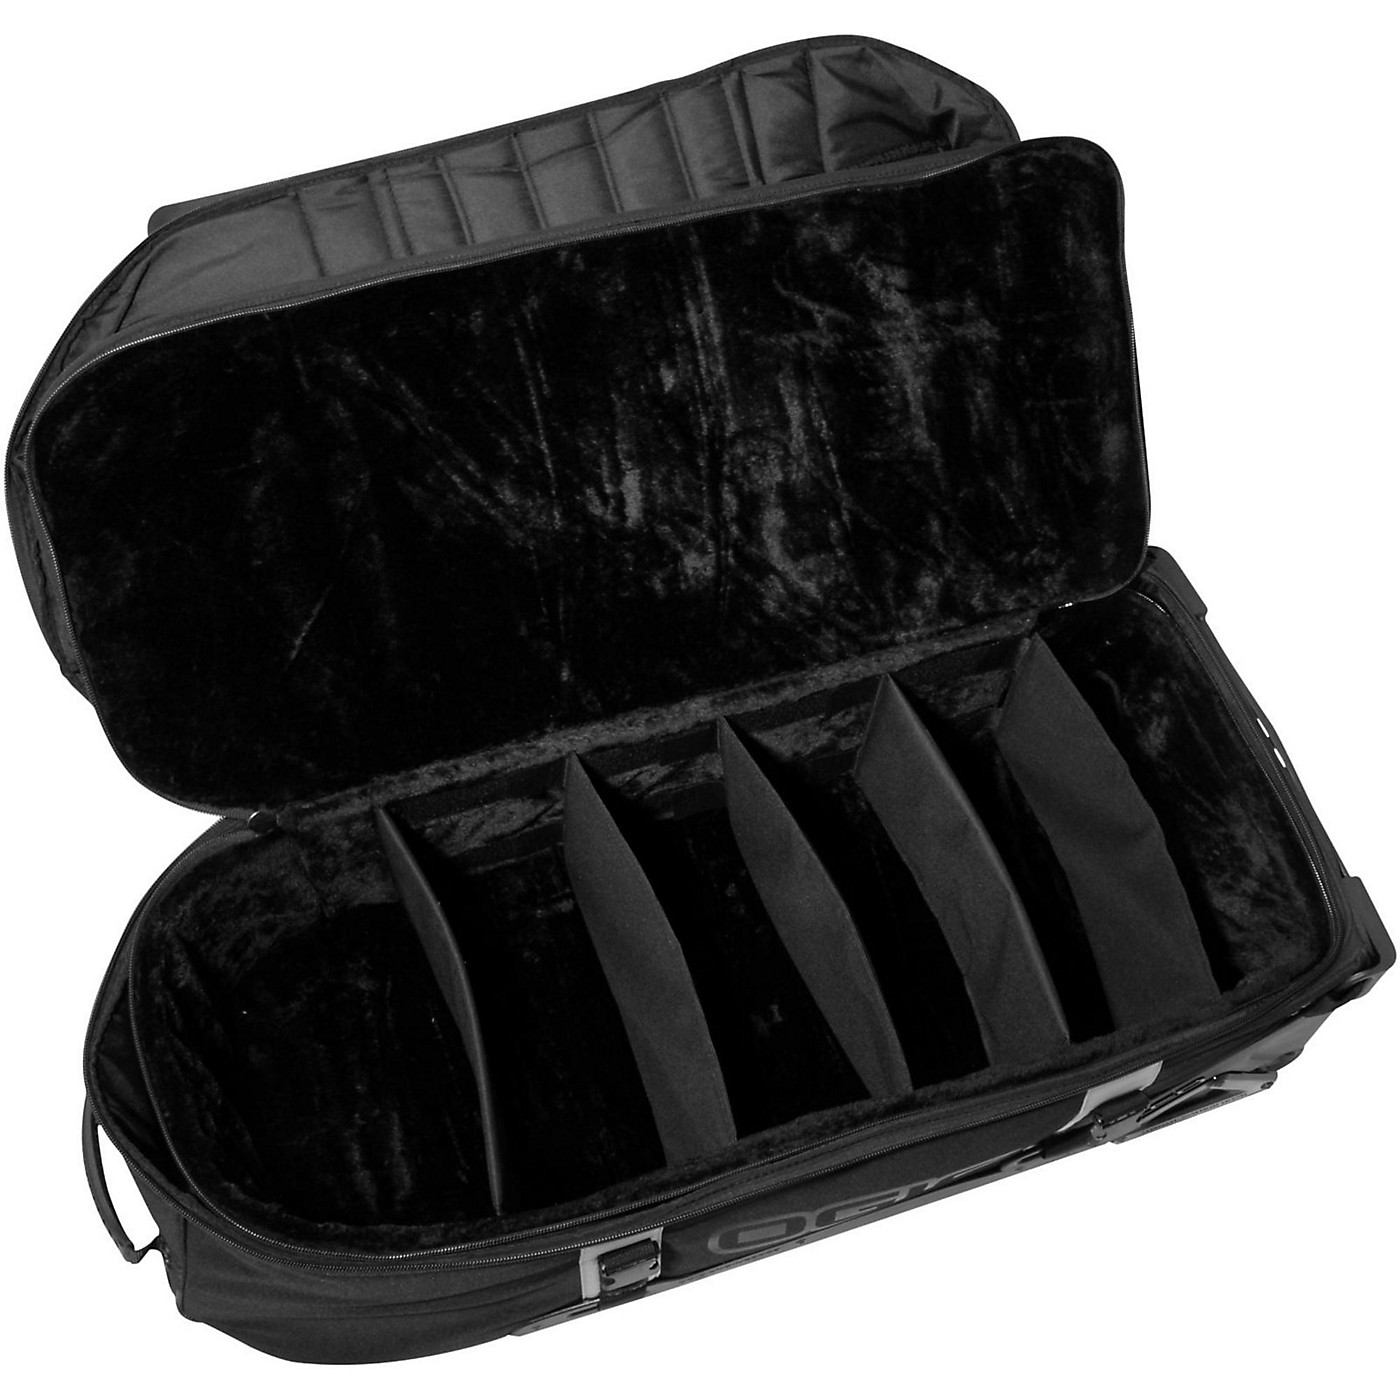 Ahead Armor Cases Adjustable Padded Insert Case for Electronic Pads and Components thumbnail